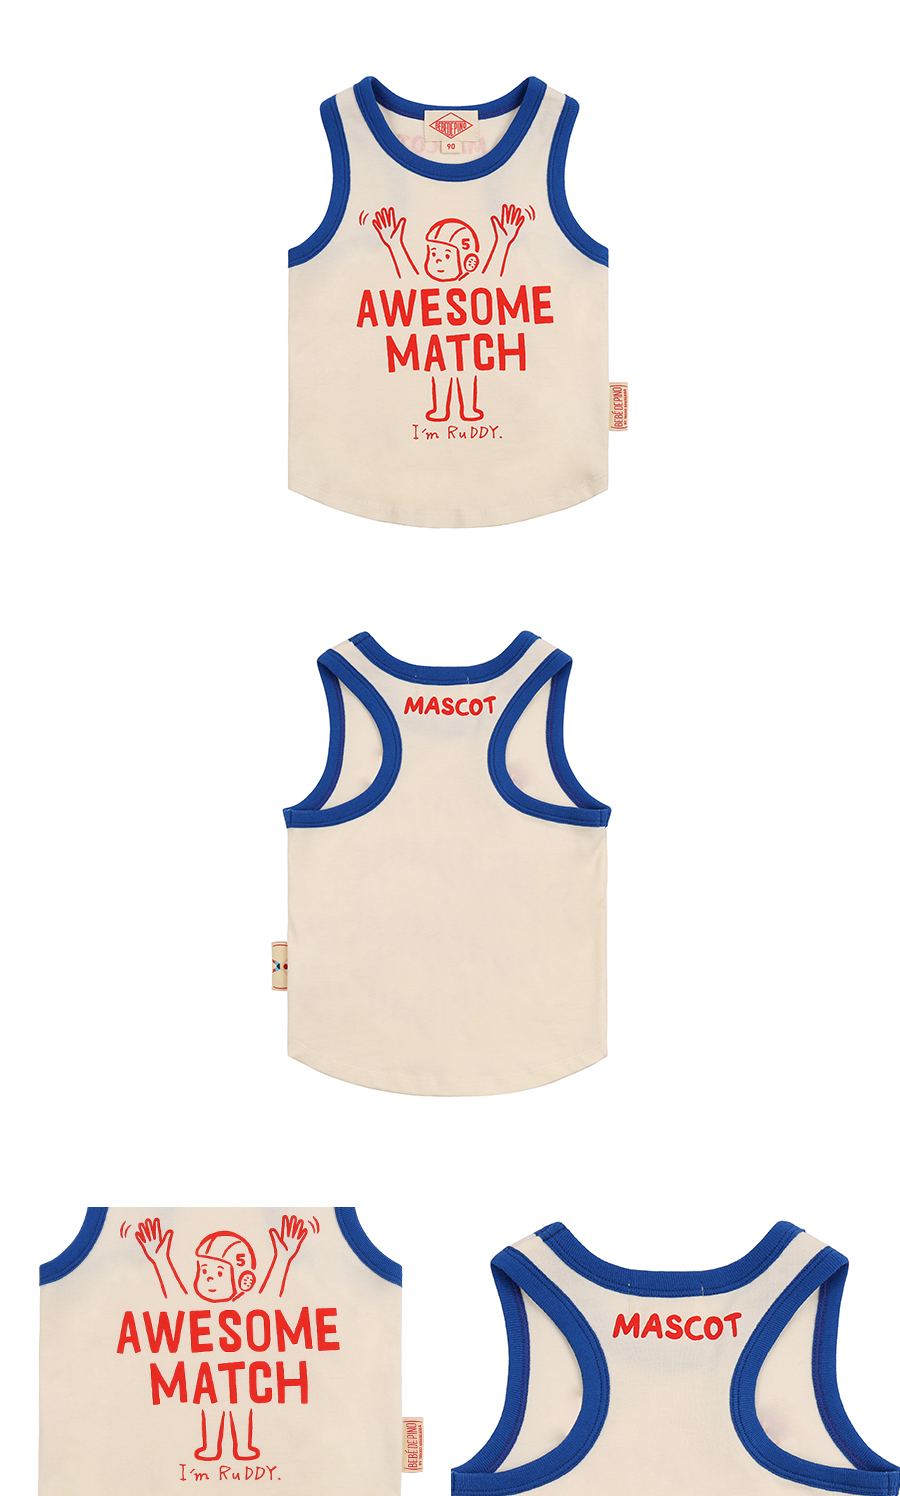 Awesome match baby color block tank top 상세 이미지